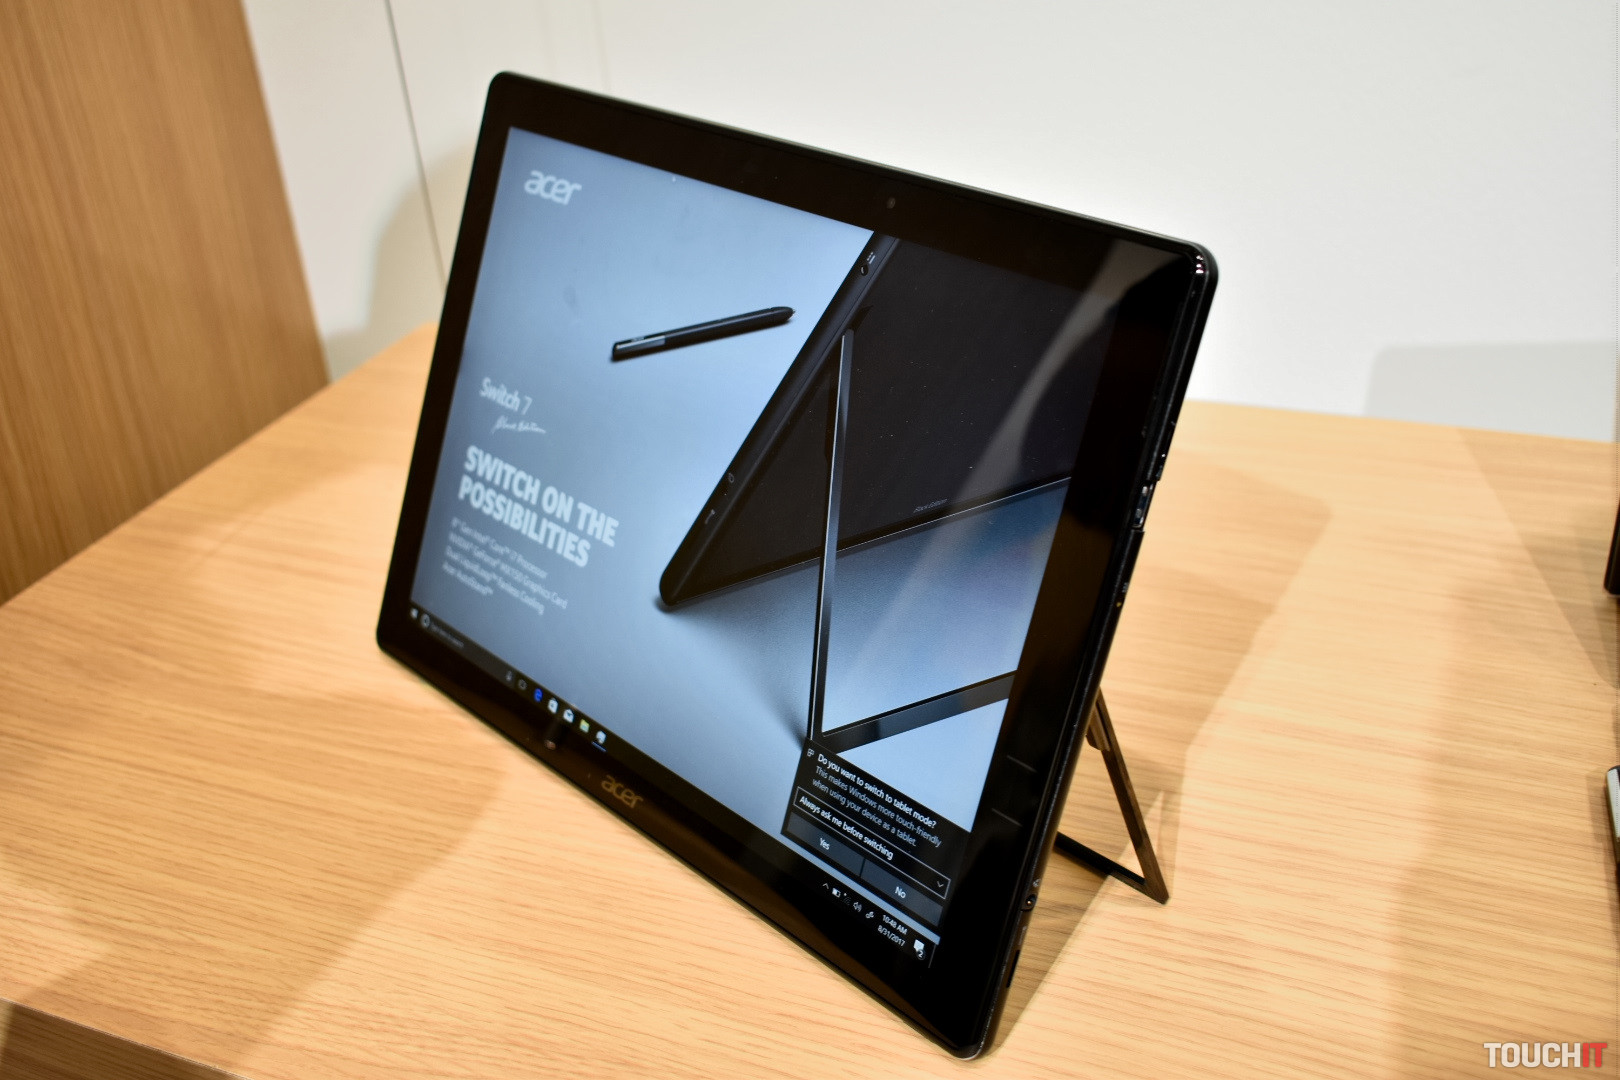 Switch 7 black edition uk | Acer Switch 7 Black Edition